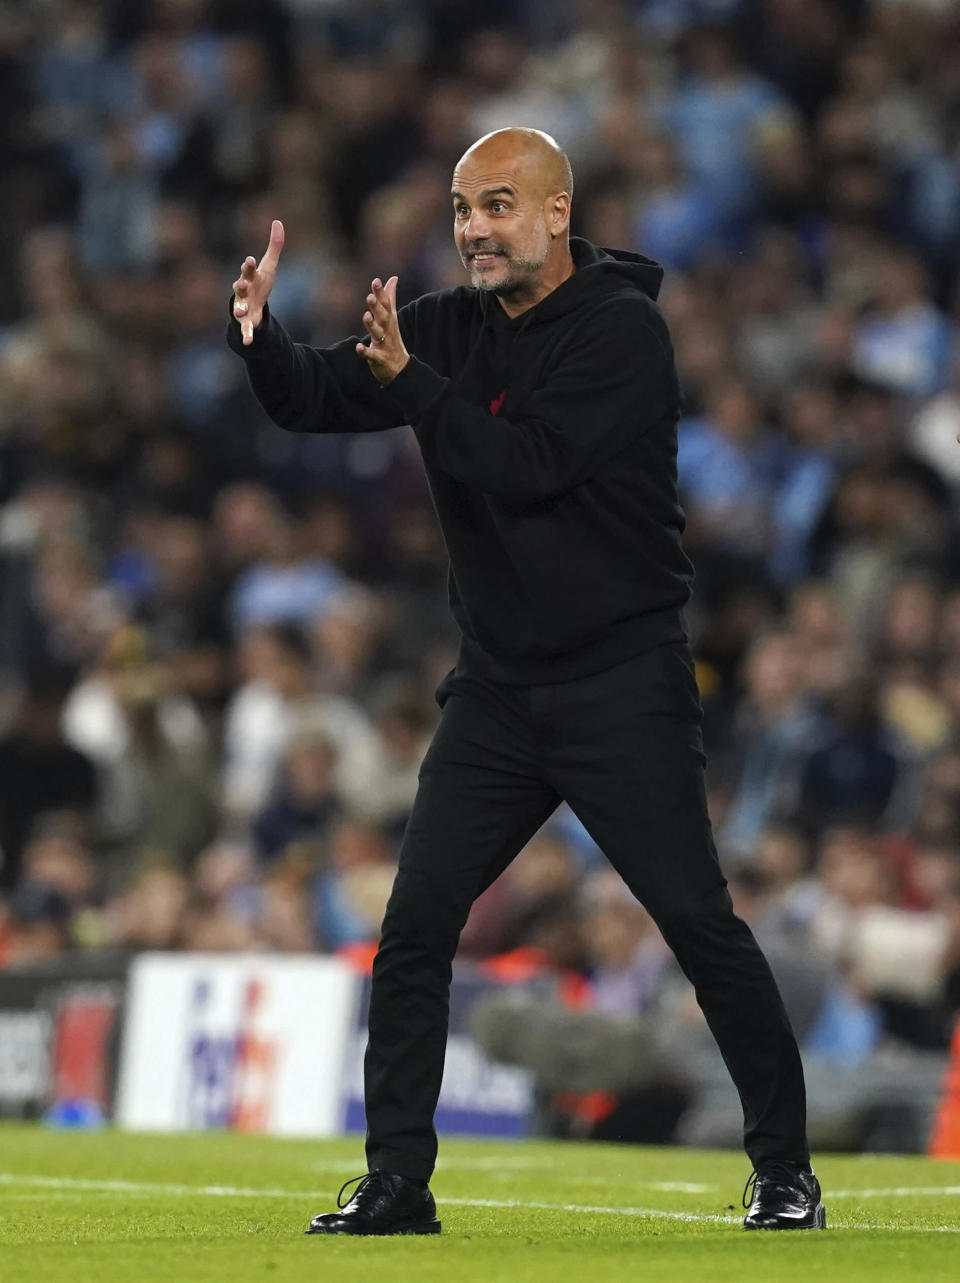 Manchester City's manager Pep Guardiola on the touchline during the Champions League Group A soccer match between Manchester City and RB Leipzig at the Etihad Stadium, Manchester, England, Wednesday Sept. 15, 2021. (Martin Rickett/PA via AP)